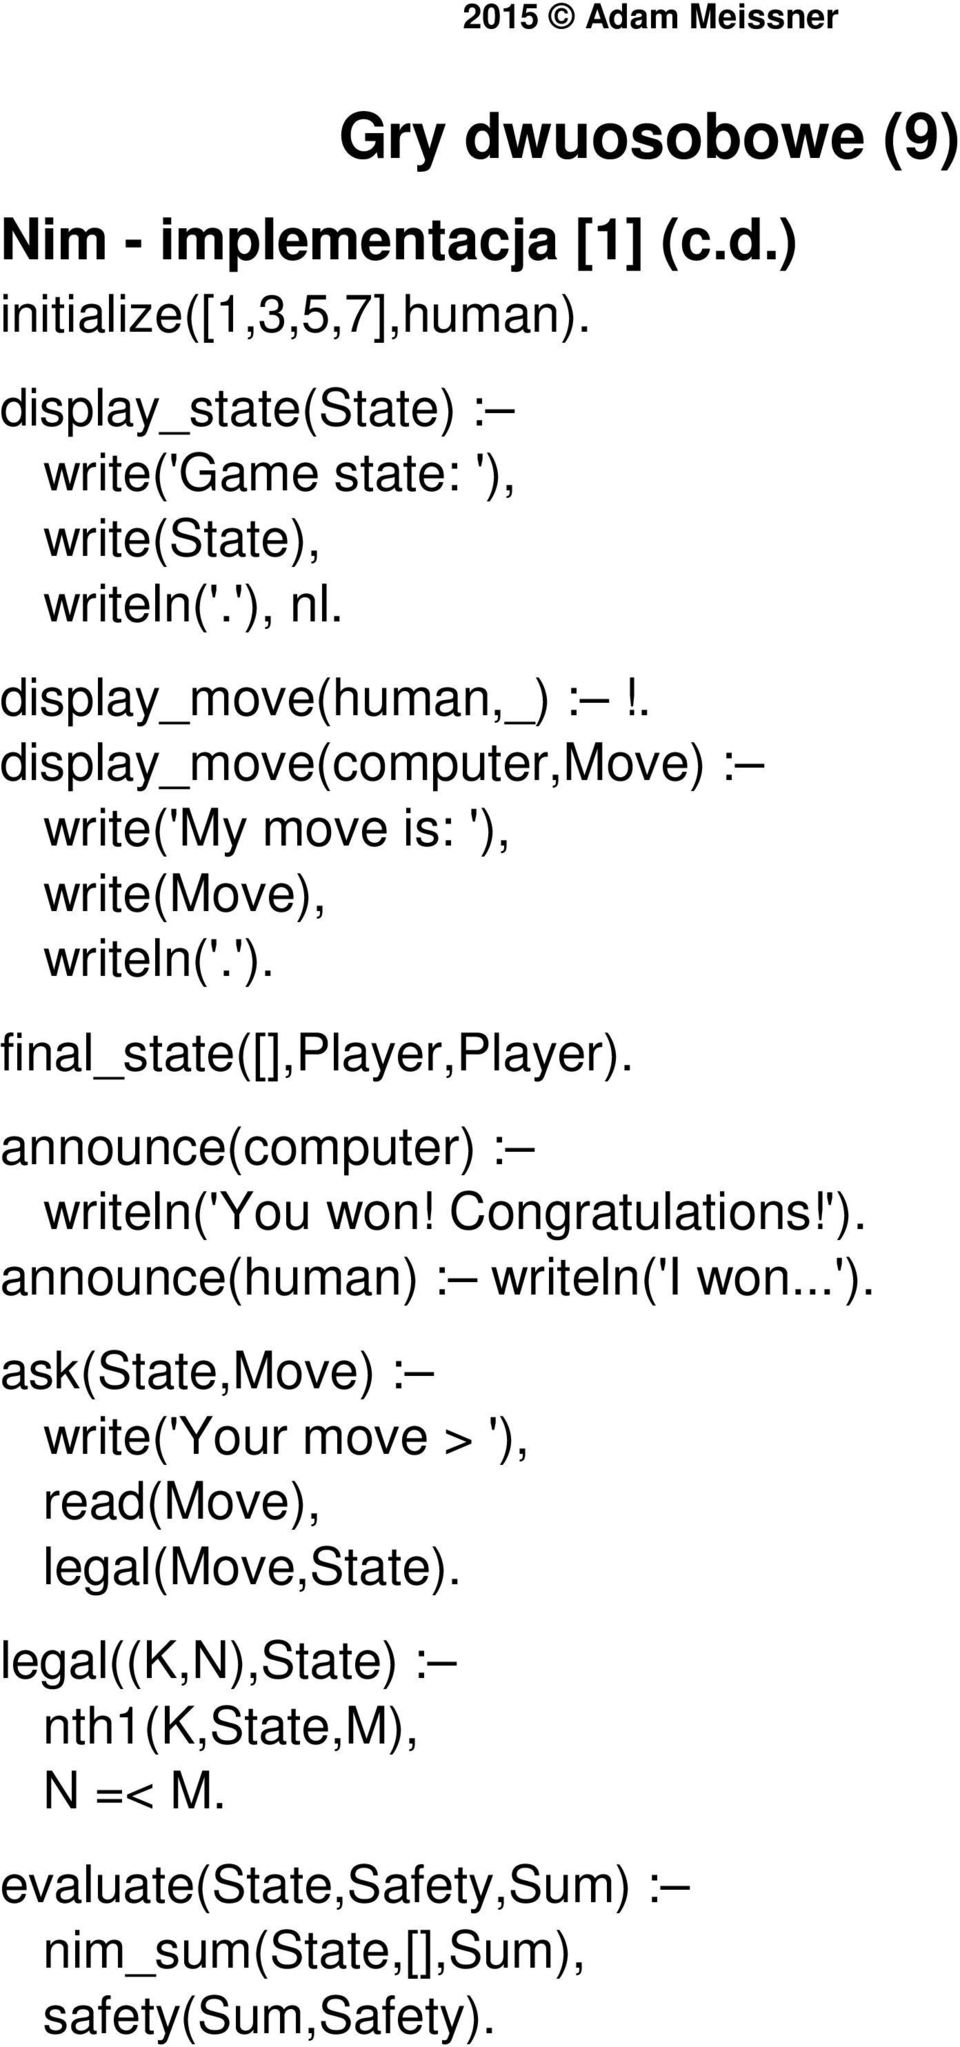 . display_move(computer,move) : write('my move is: '), write(move), writeln('.'). final_state([],player,player).